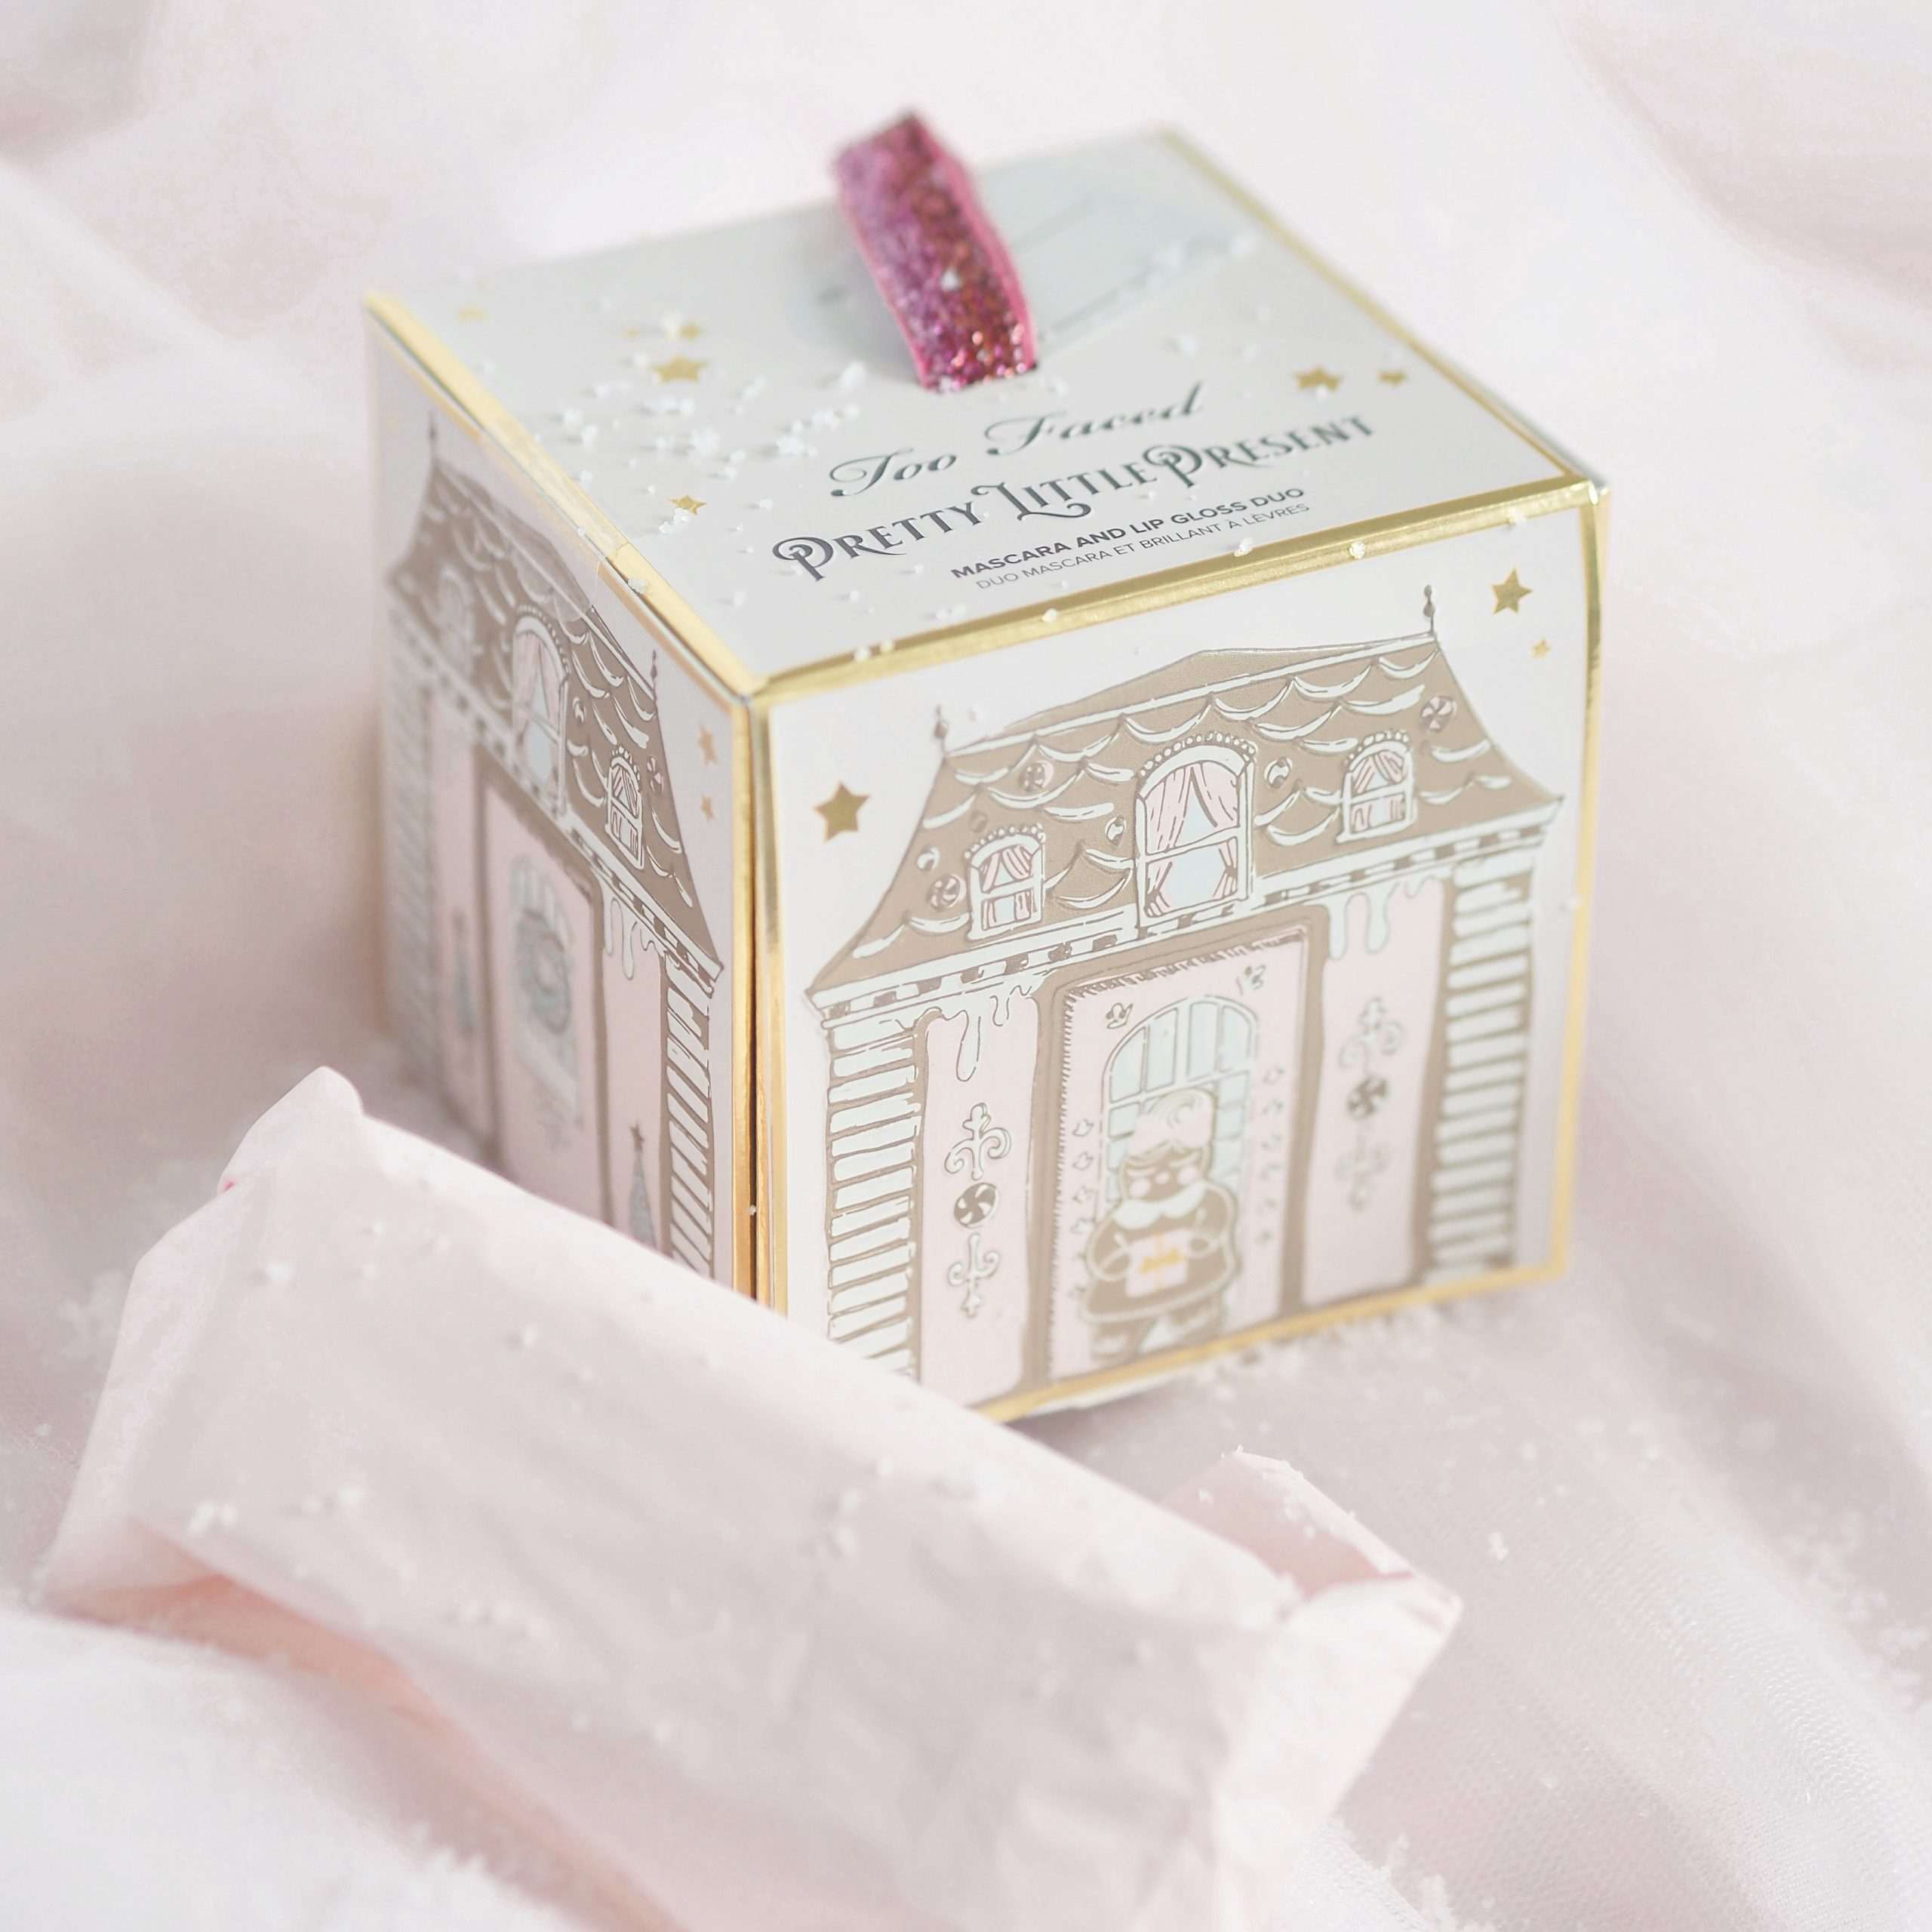 Too Faced Pretty Little Present | Perfectly Pretty Christmas Gift Ideas